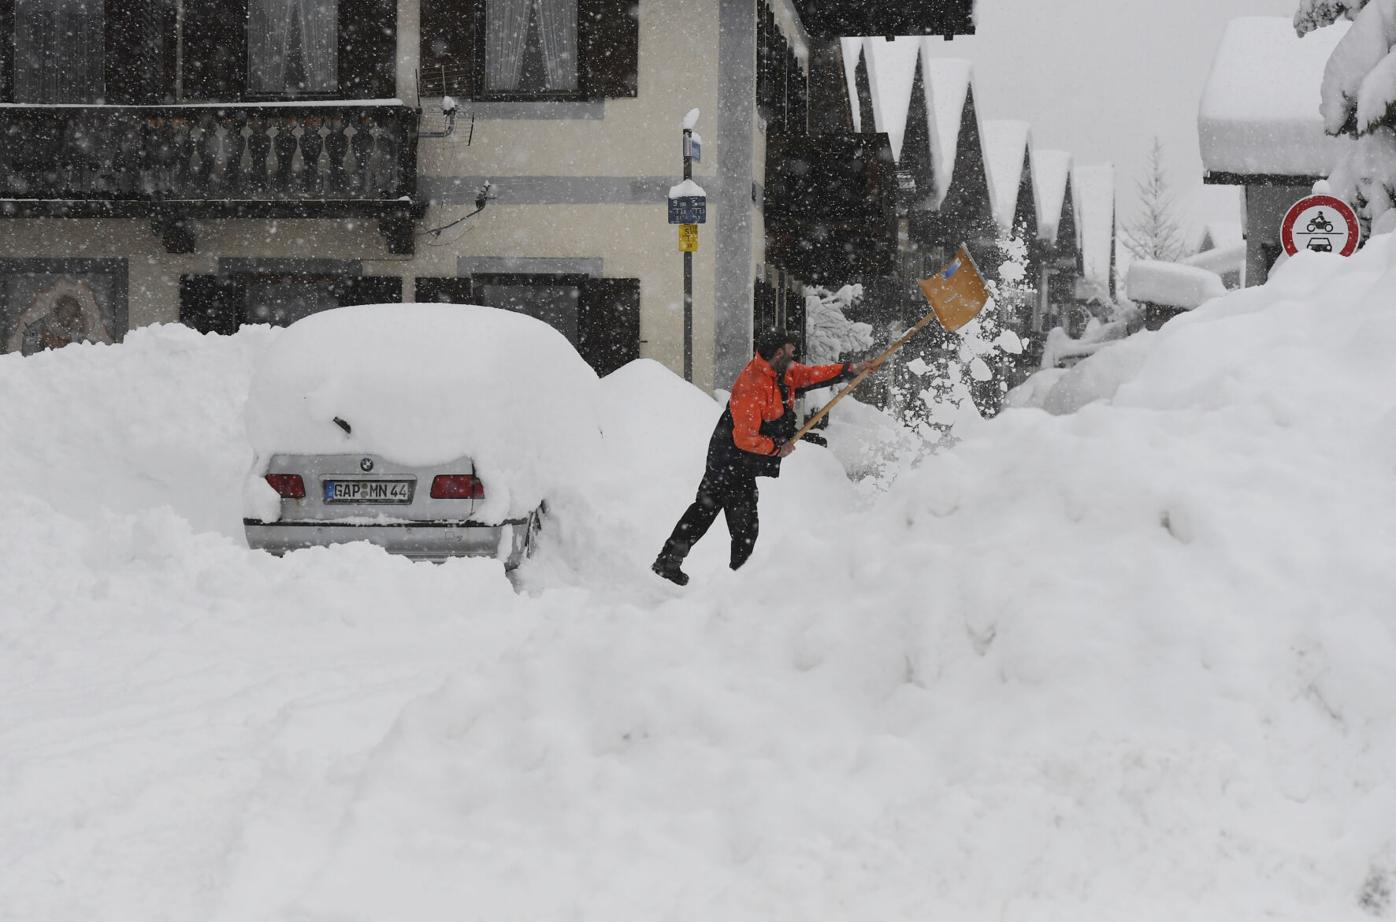 Freezing weather hits much of Europe, from Poland to Turkey